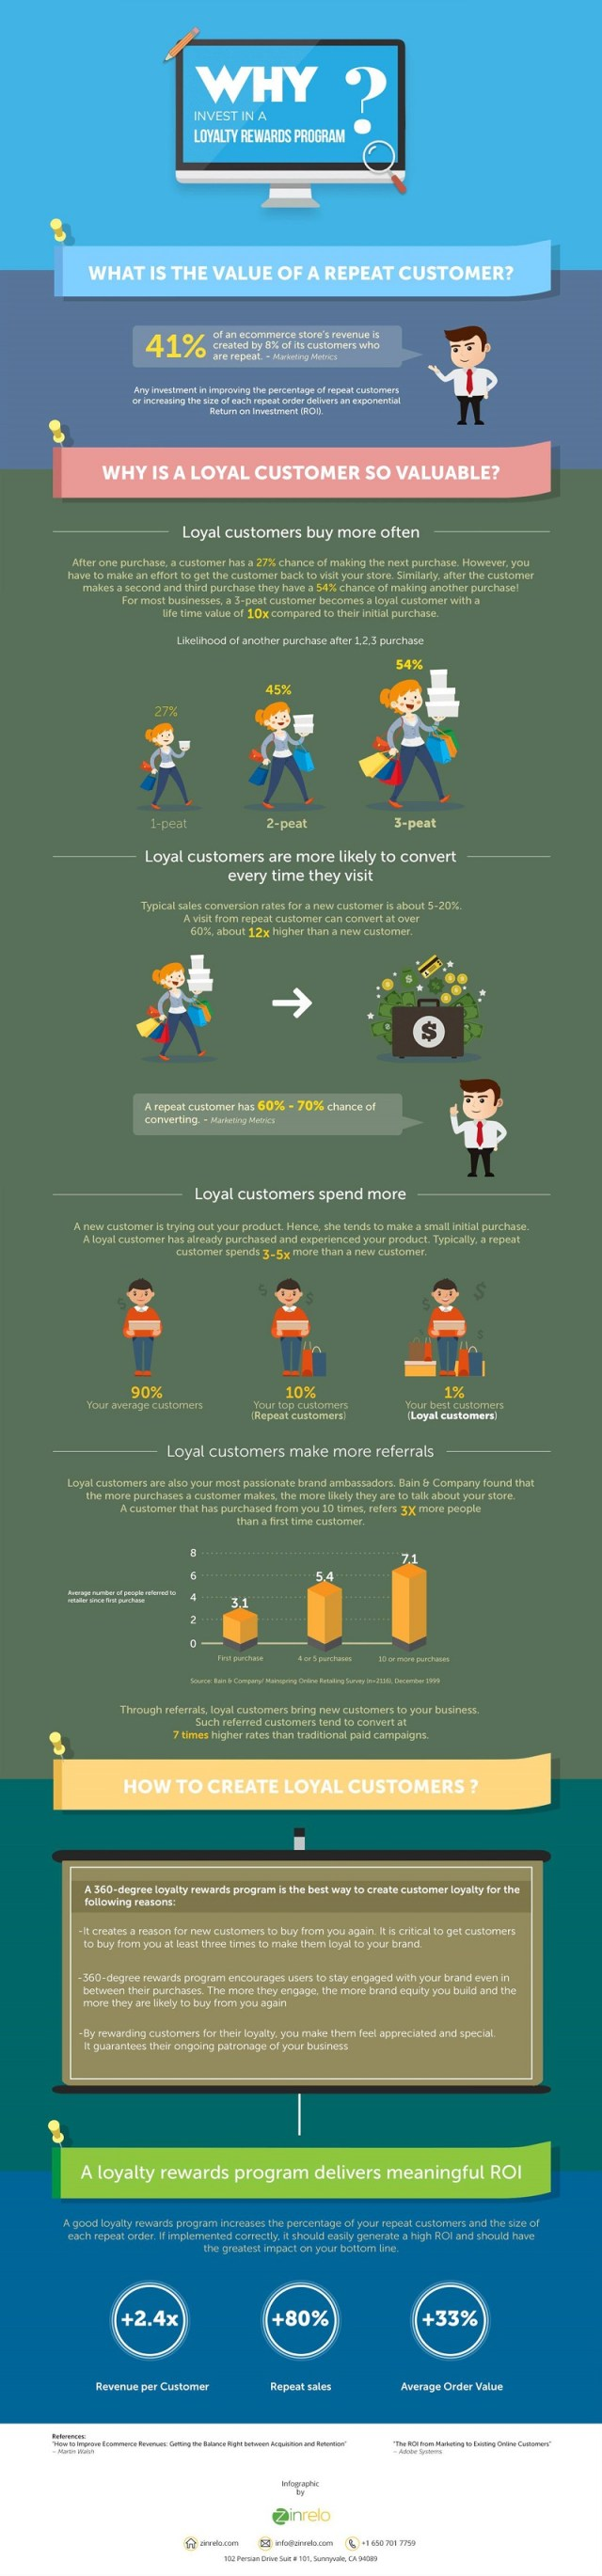 Why Invest in Loyalty Rewards Programs